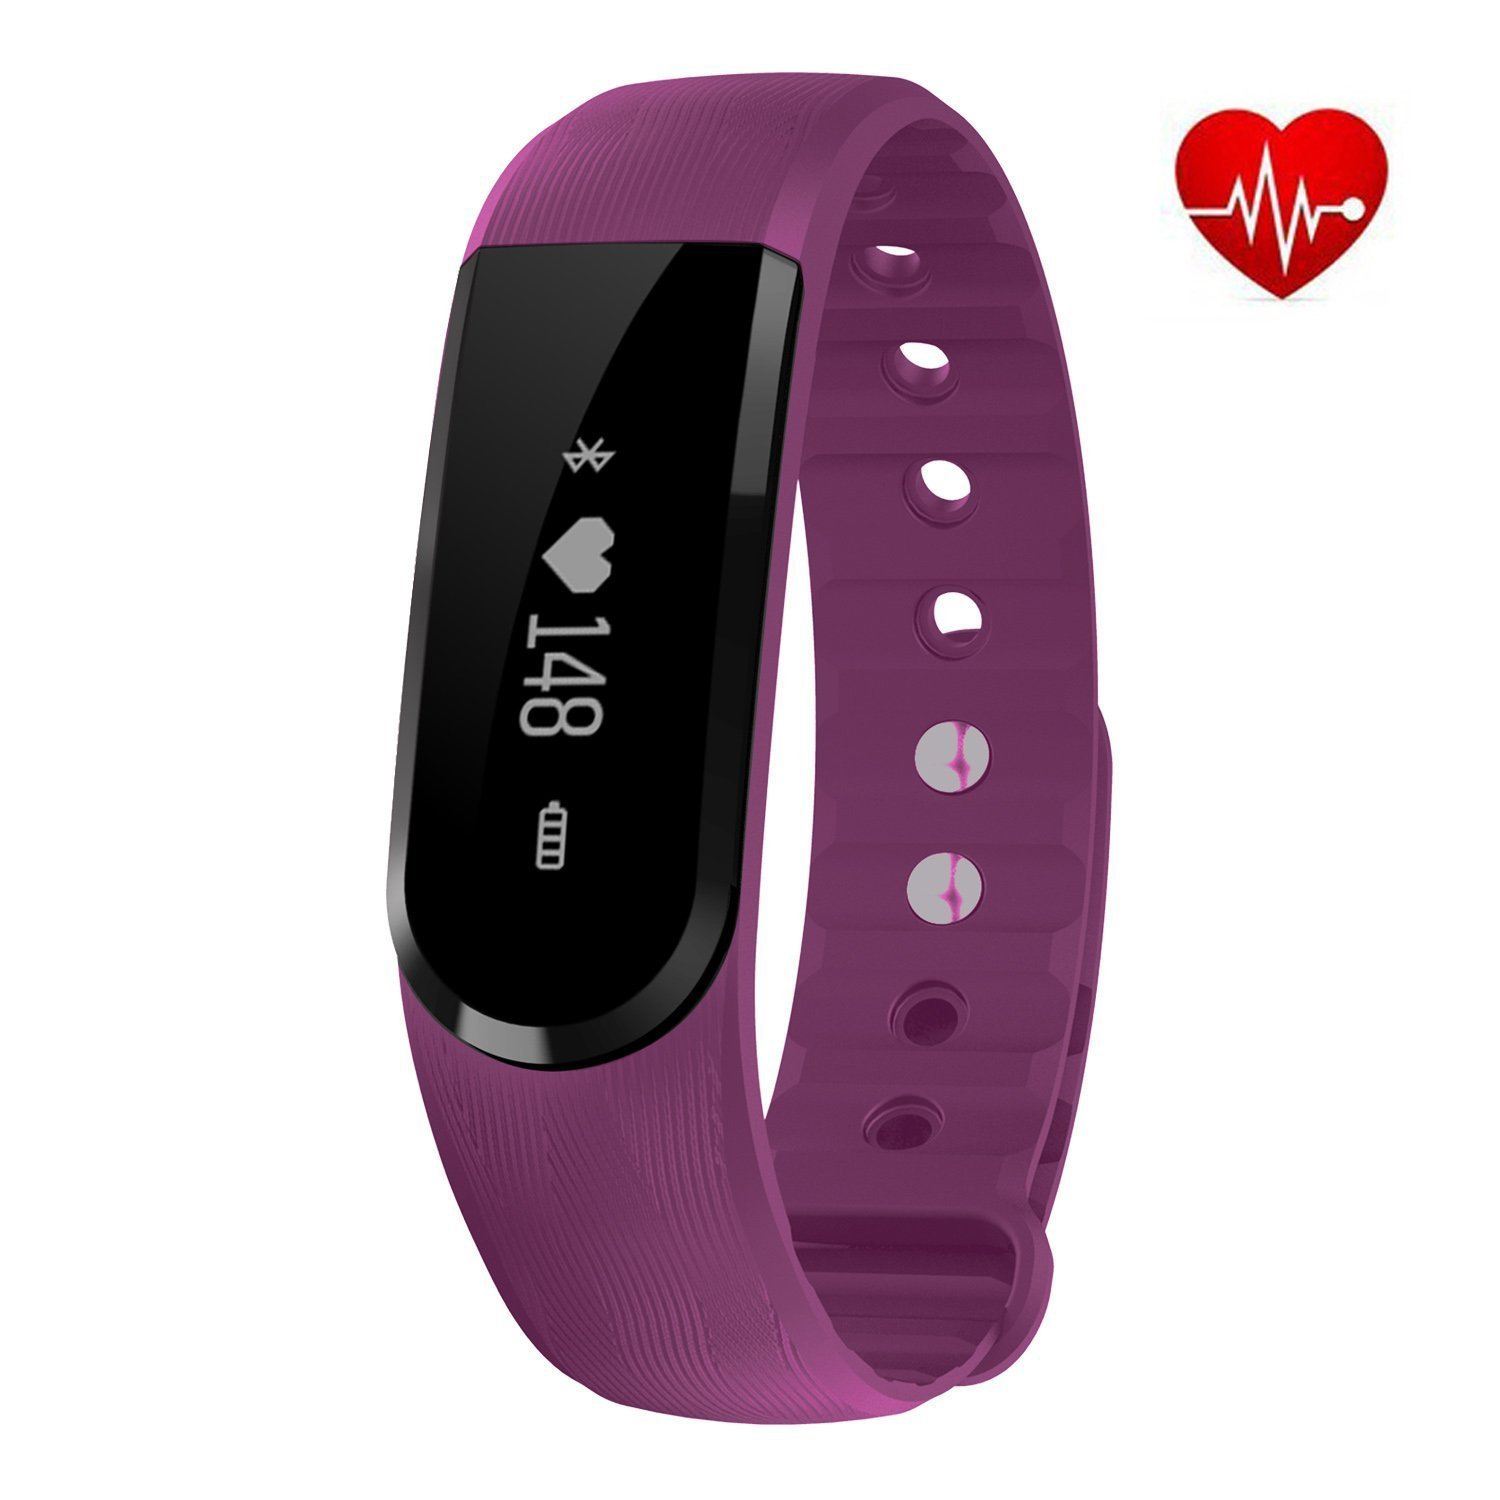 3-fit-fire-fitness-tracker